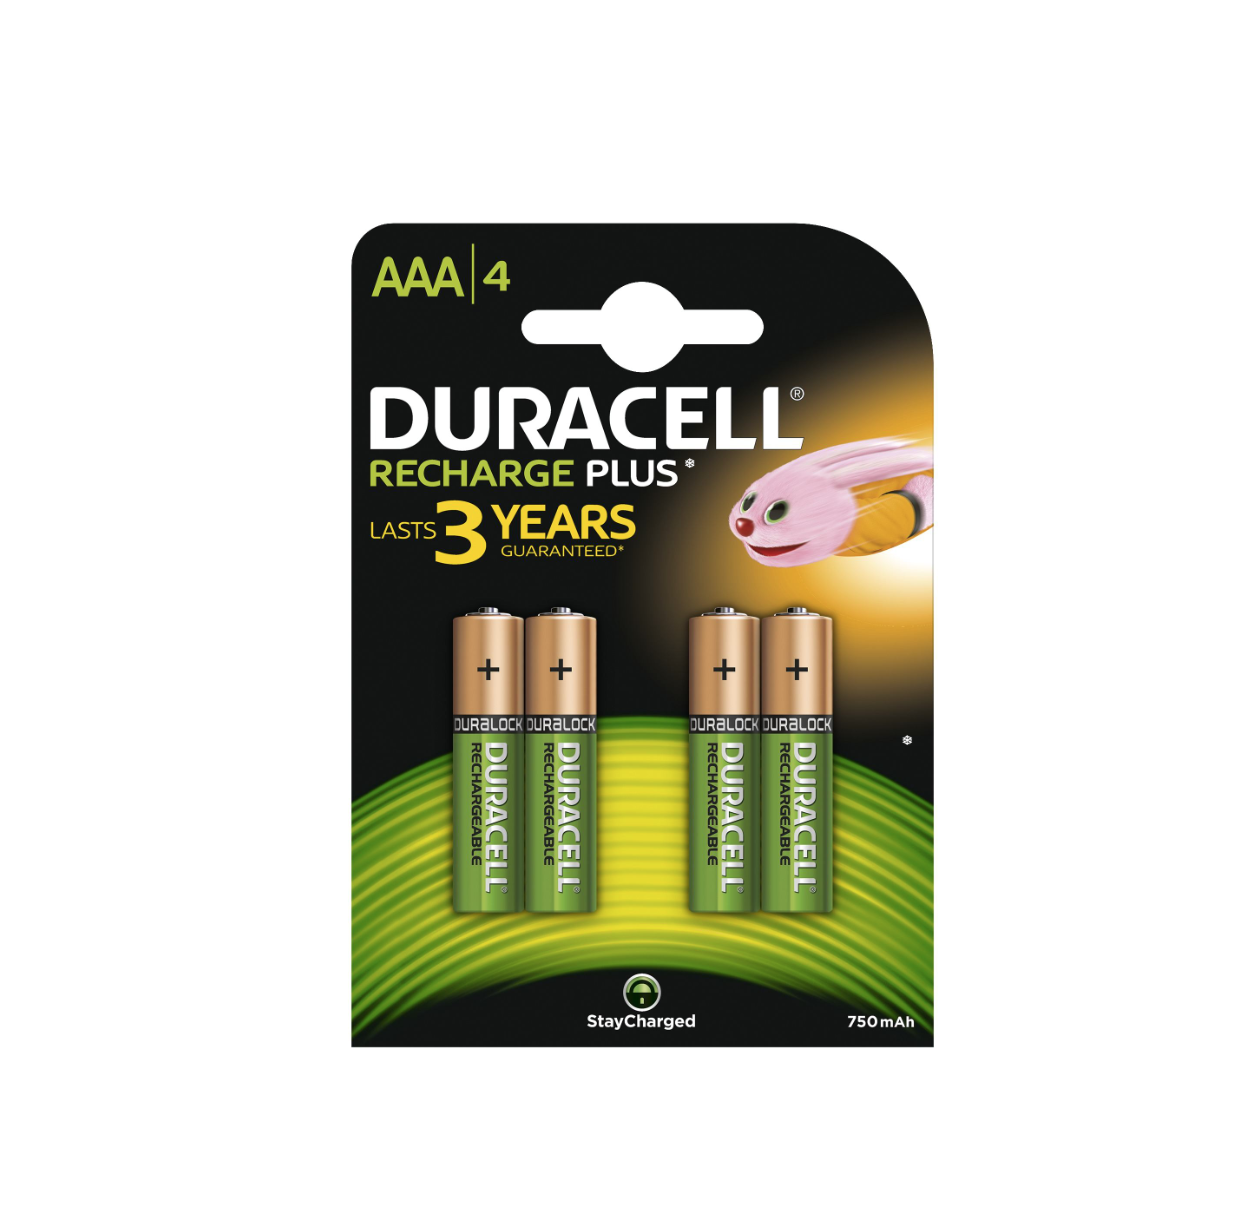 DURACELL RECHARGE PLUS AAA 4 PILES RECHARGEABLE NIMH 750mAh/1,2V BATTERIE 5000394090231 COMASOUND KARTEL CSK ONLINE